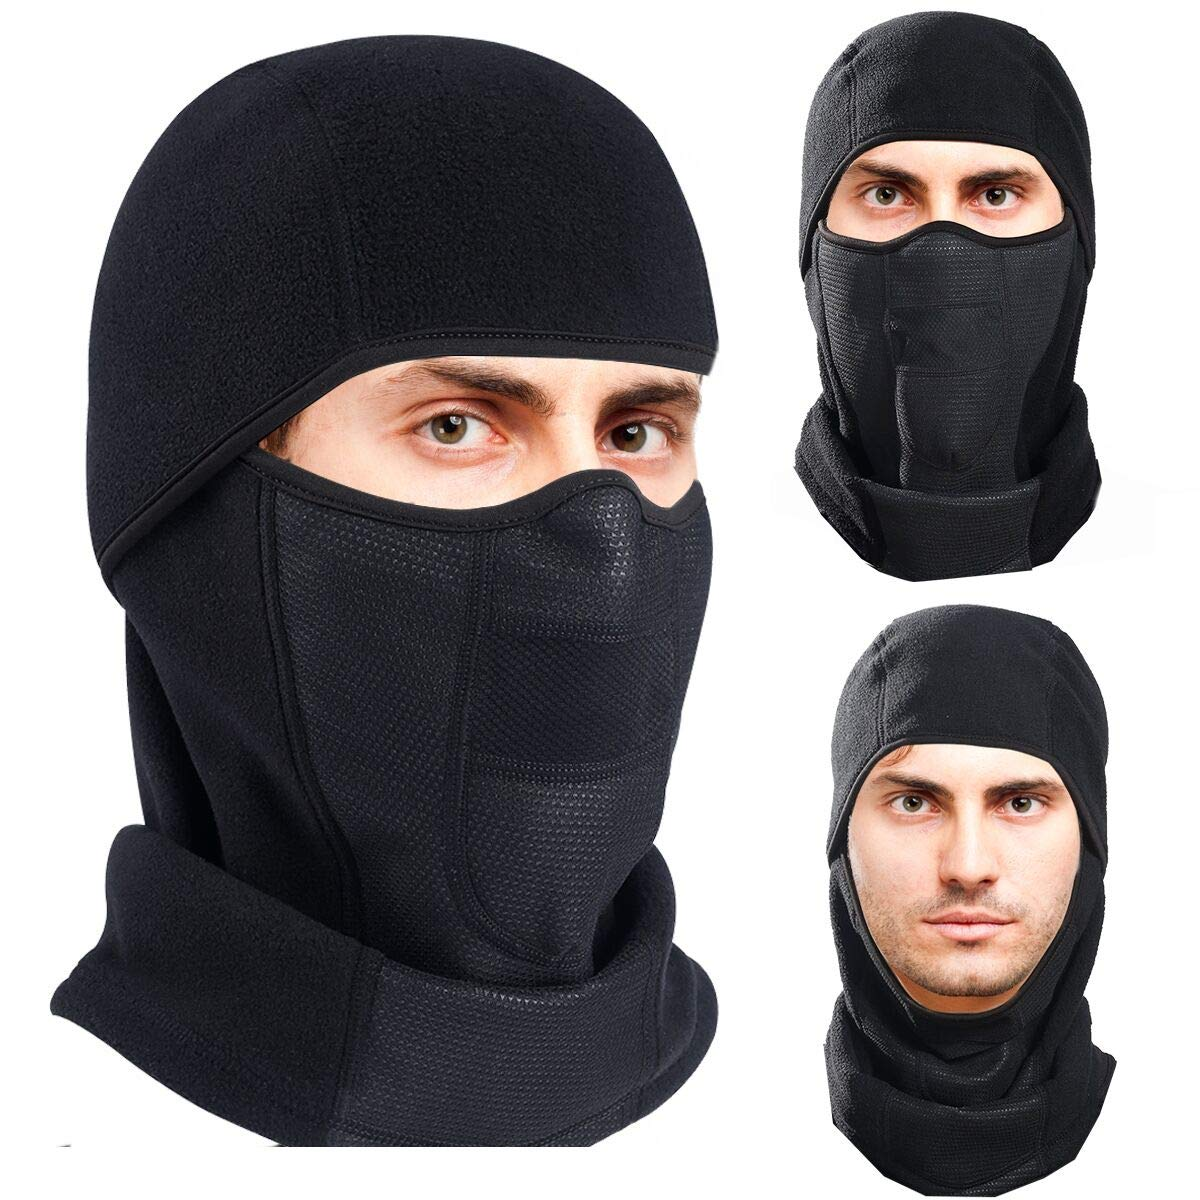 Omenex Balaclava Half Face Mask Windproof Men Women for Skiing Snowboarding  Motorcycling Winter Outdoor Sports Highly ... 33a29a9fb